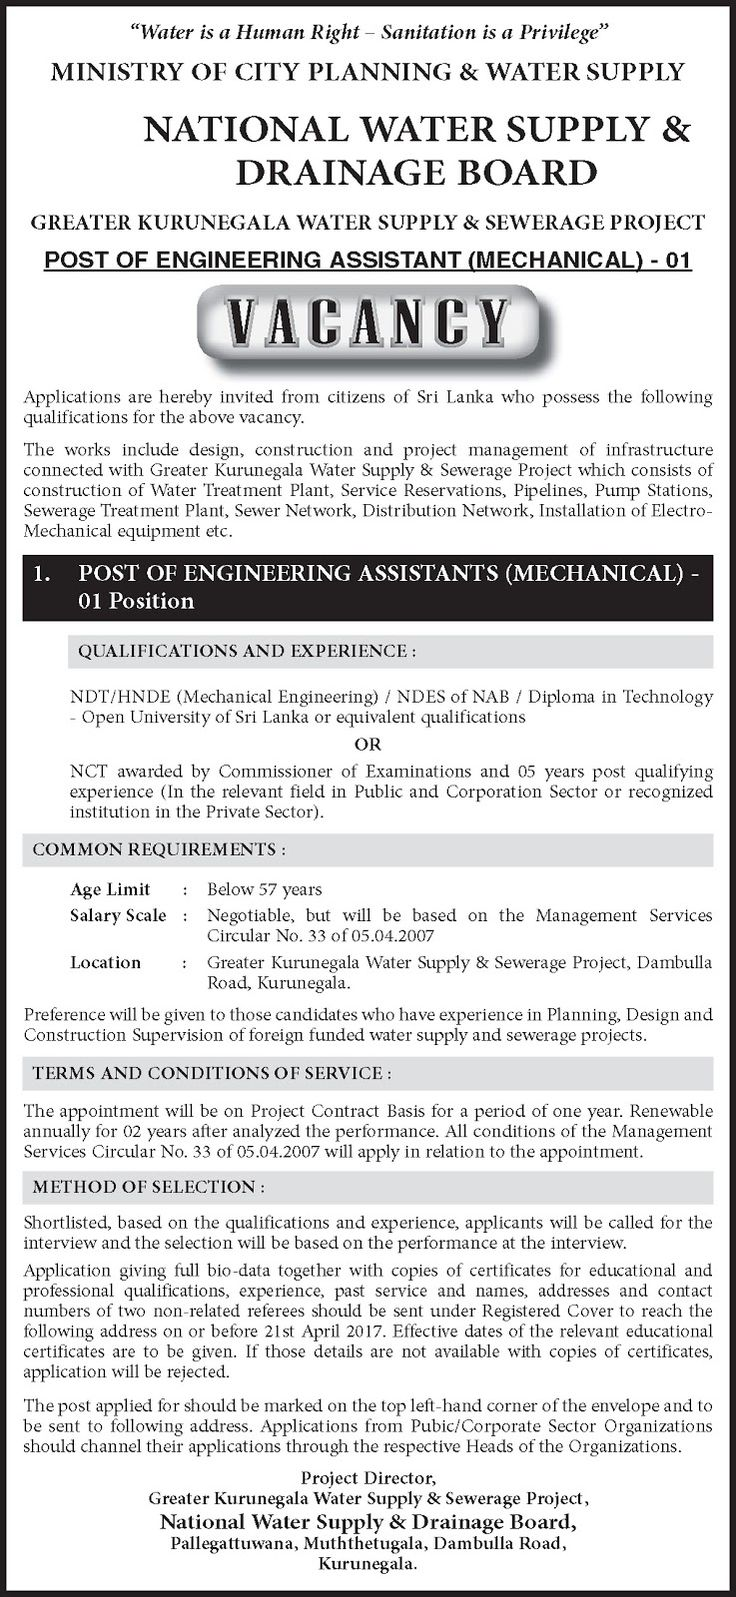 Sri lankan government job vacancies at national water supply drainage board for engineering assistant